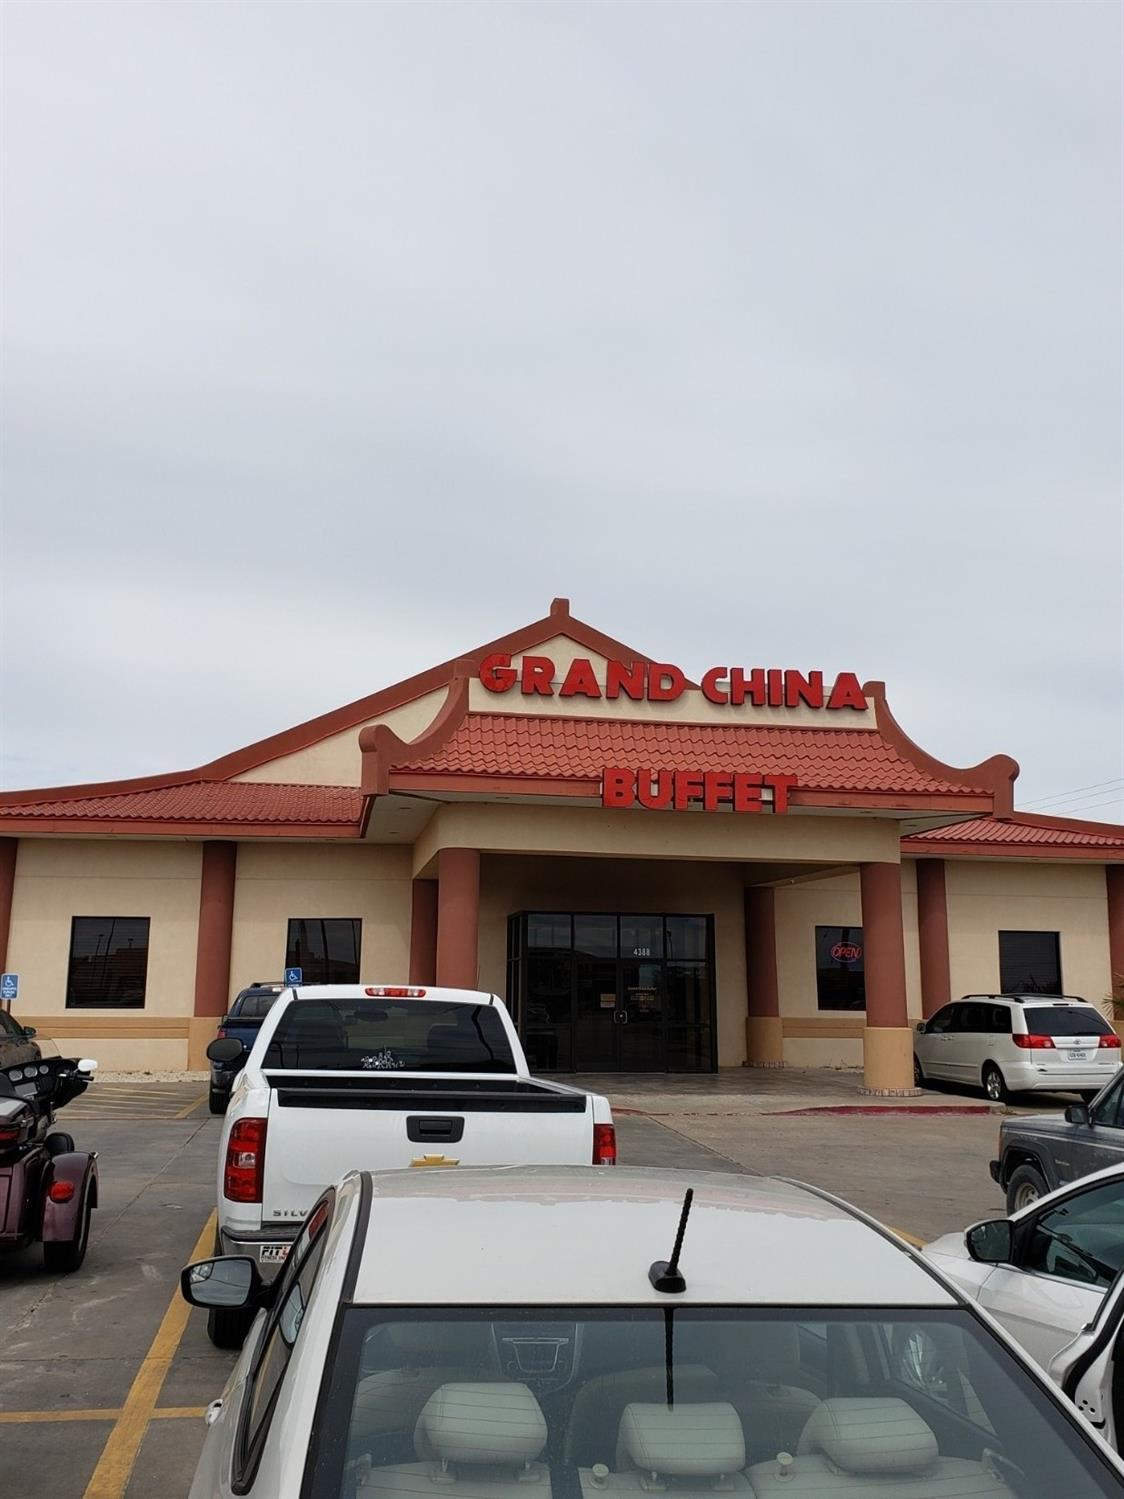 1.275 acre redevelopment opportunity located in San Angelo retail corridor. Building is built out as a restaurant with excellent access and visibility with multiple points of access.